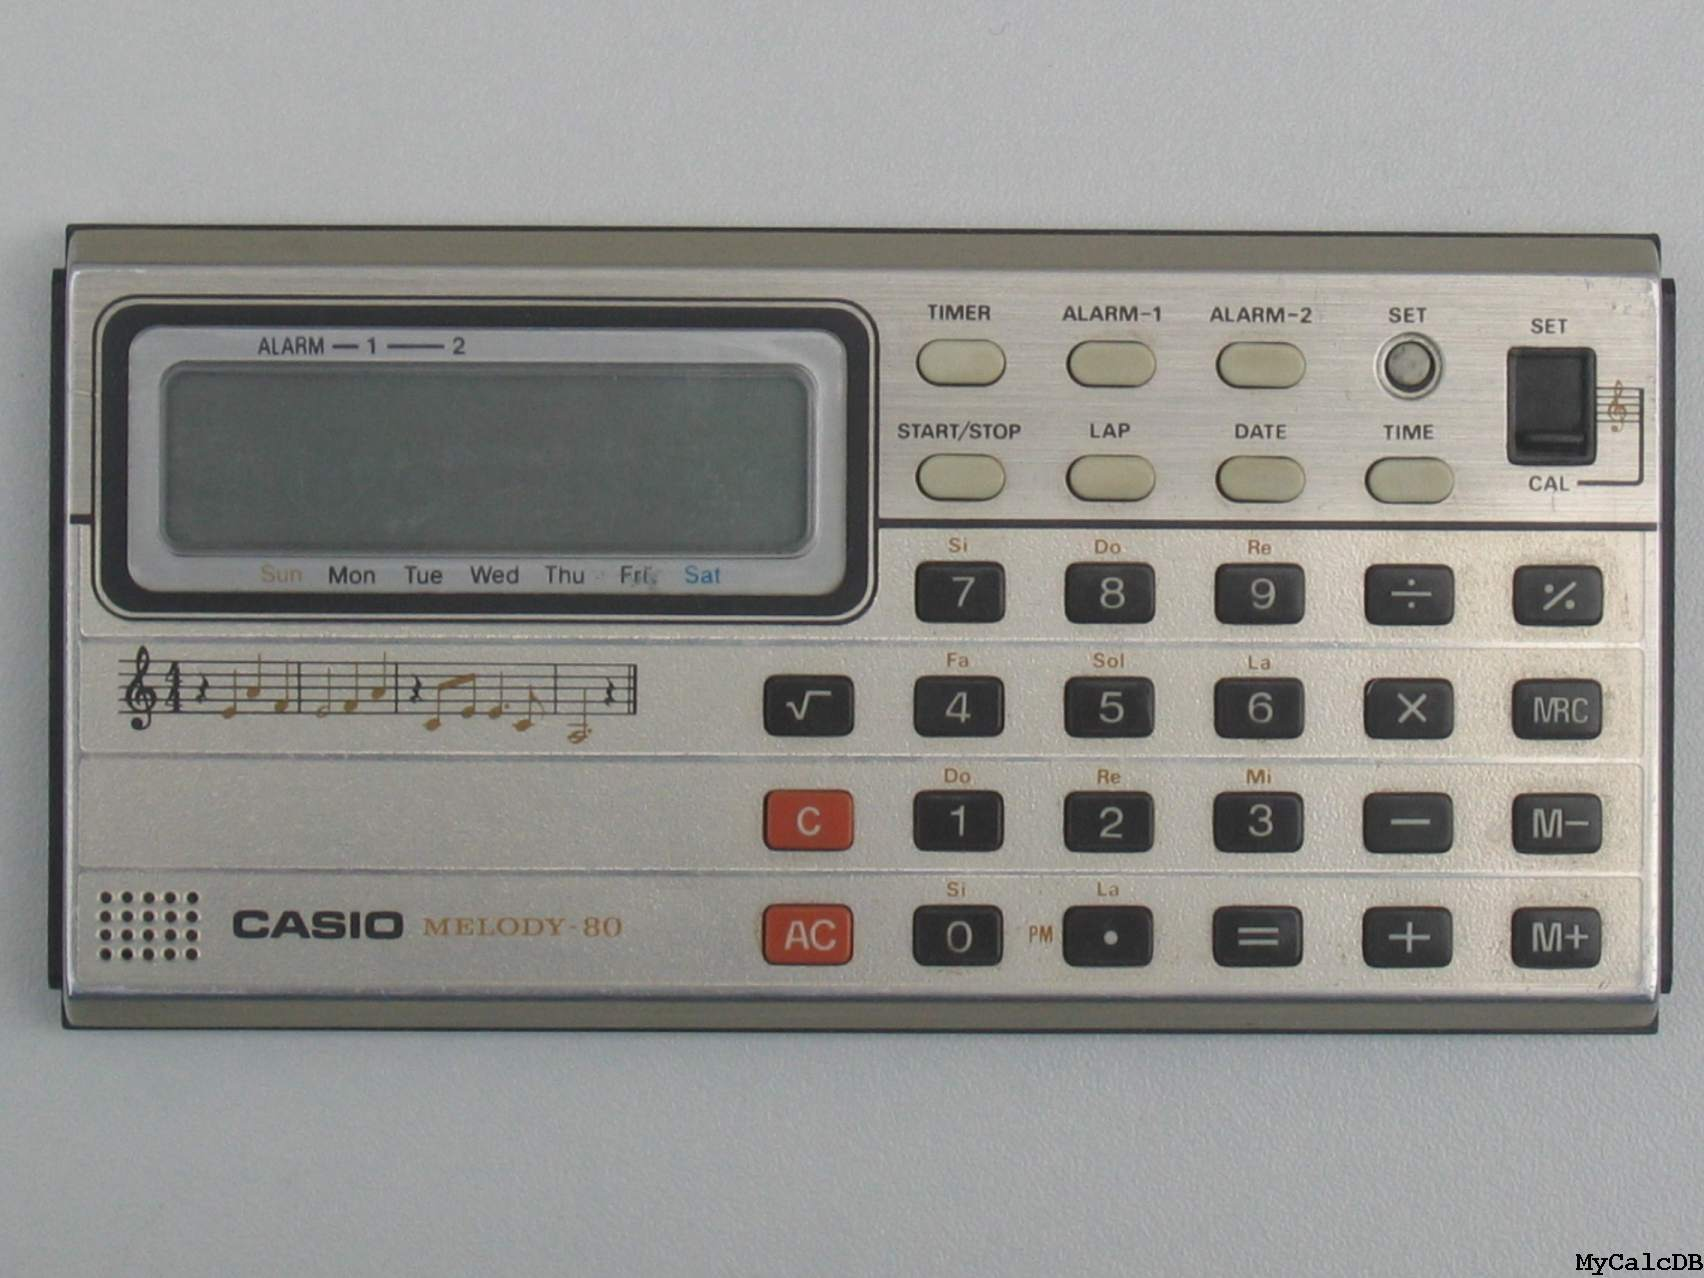 Casio MELODY-80